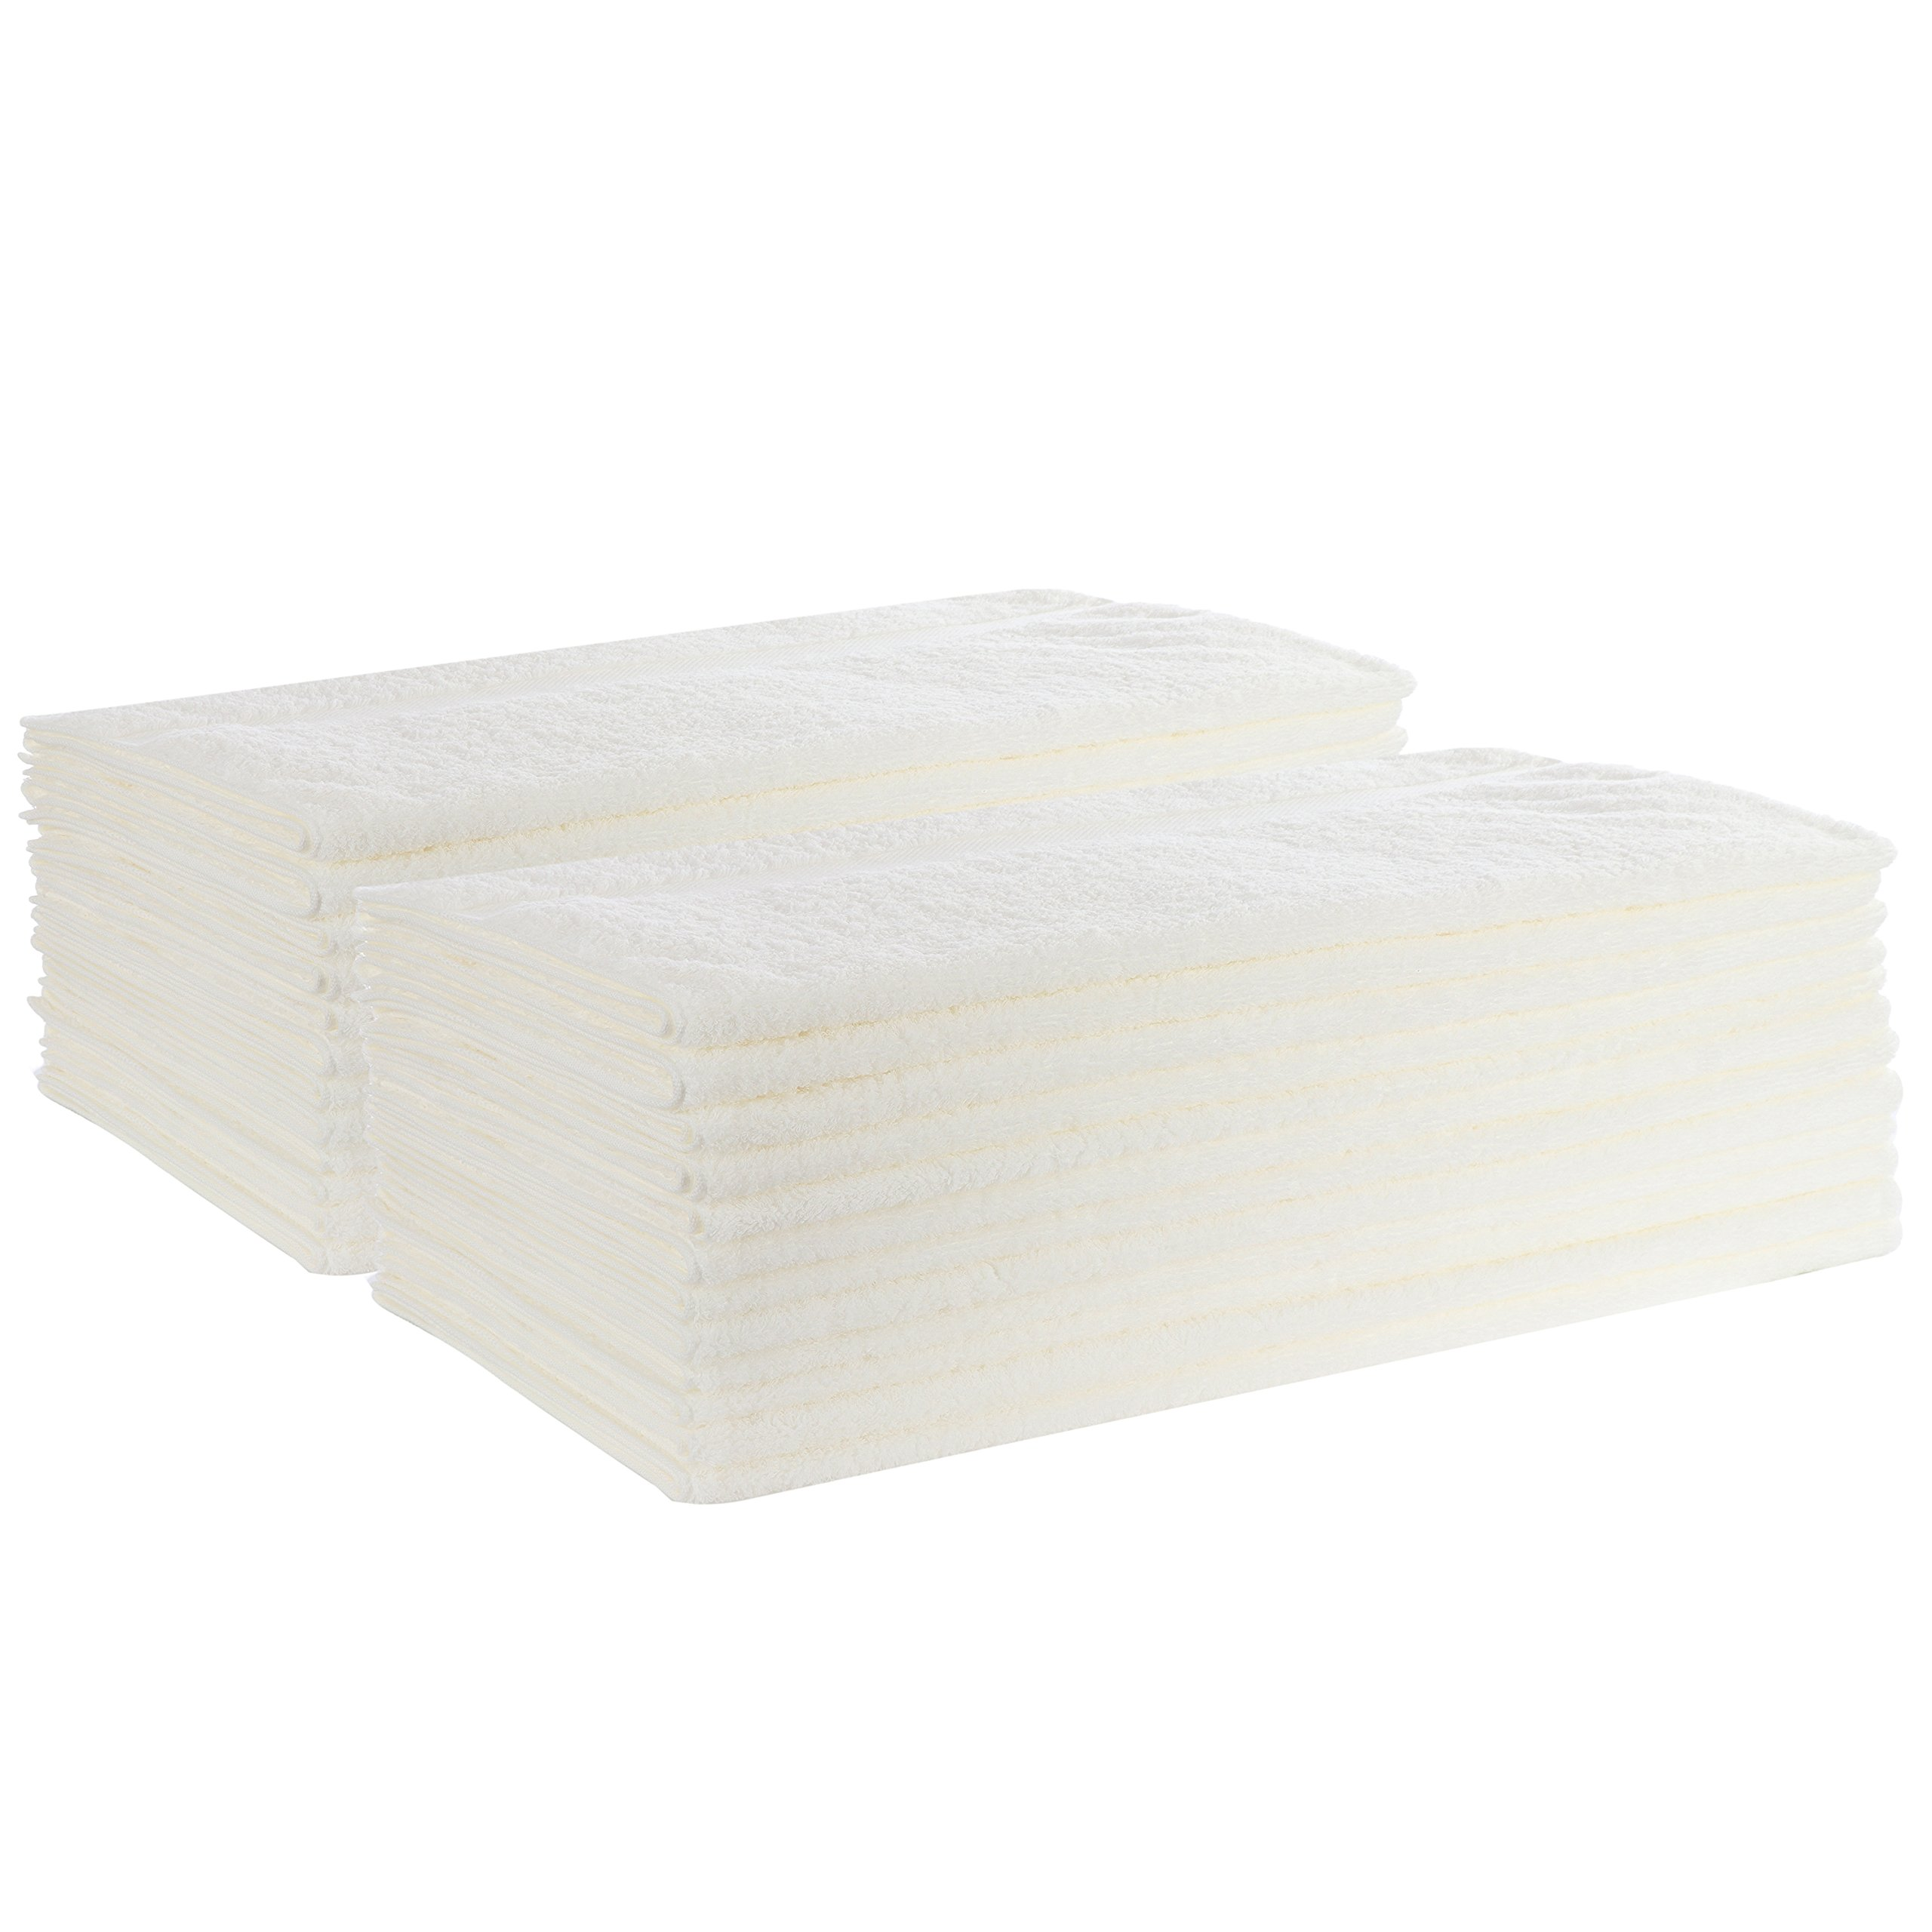 Organic Cotton Bath Towel 24 Pack - LARGE- Perfect For Those With Sensitive Skin, Including Infants, Toddlers, and Kids of All Ages - Hypo-Allergenic and Free of Harsh Chemicals and Dyes